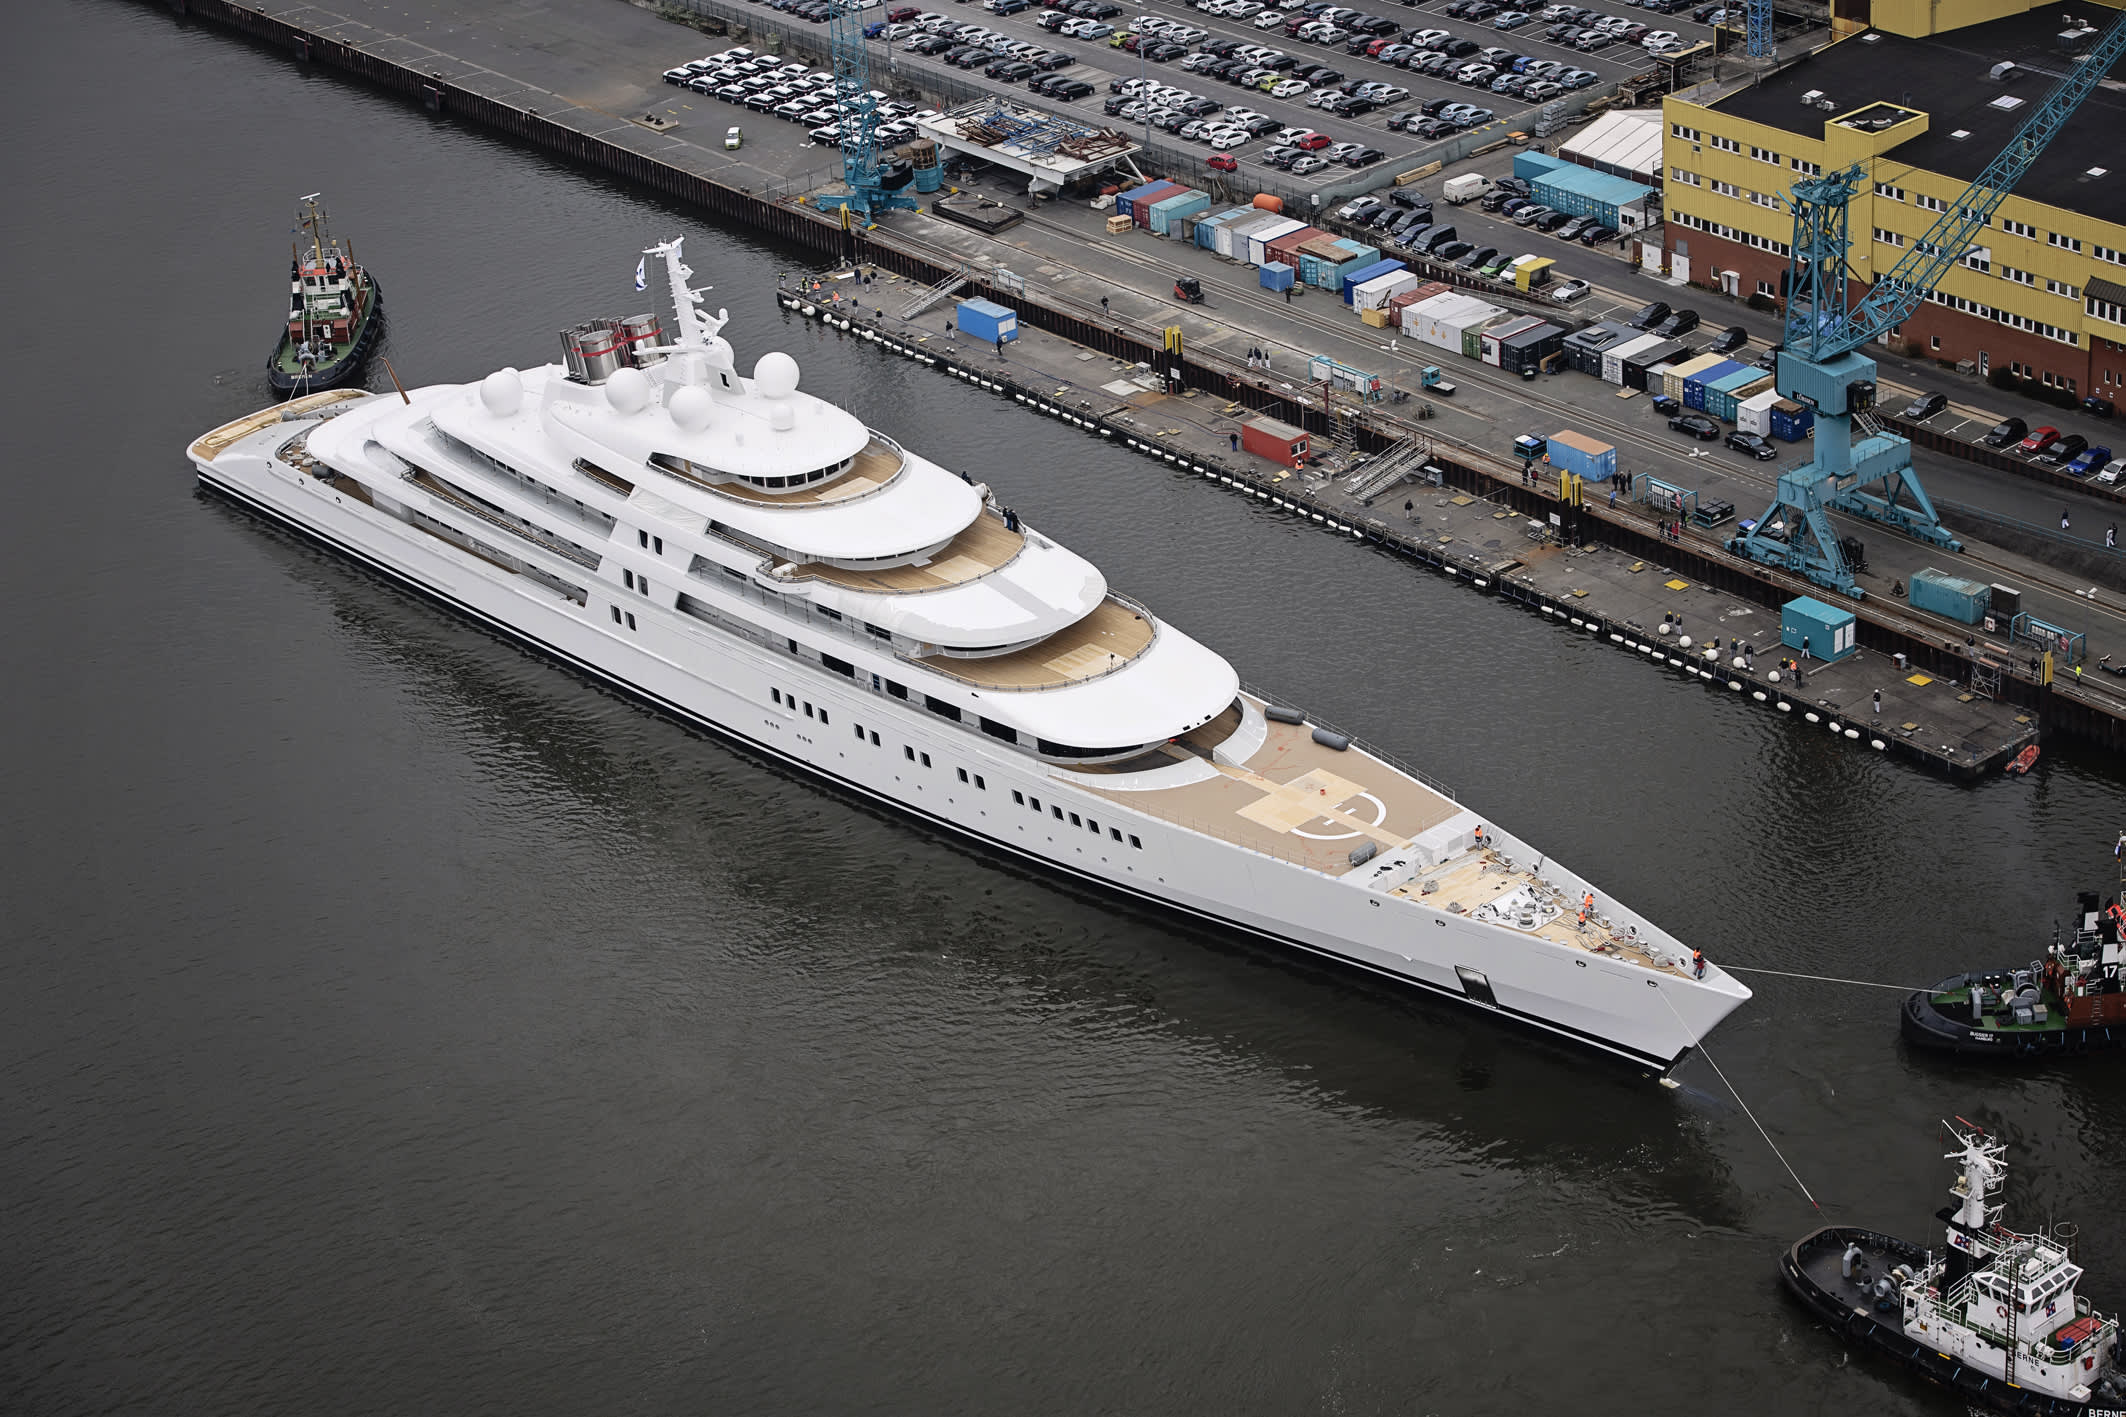 The largest yachts in the world